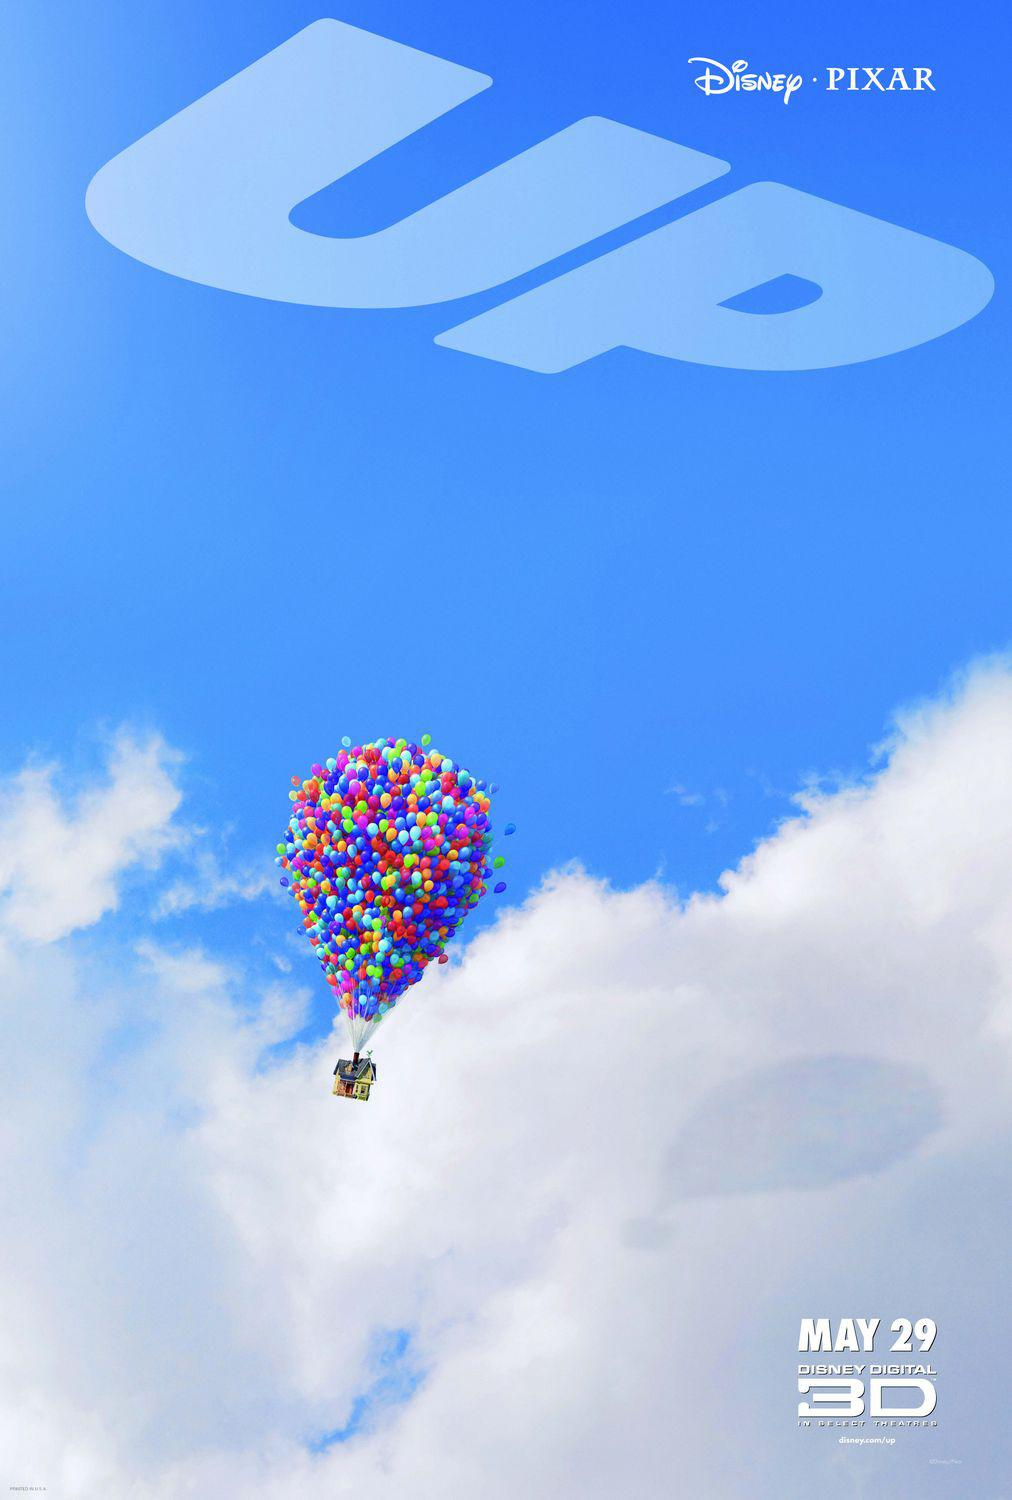 UP - Disney Pixar animated film poster - house